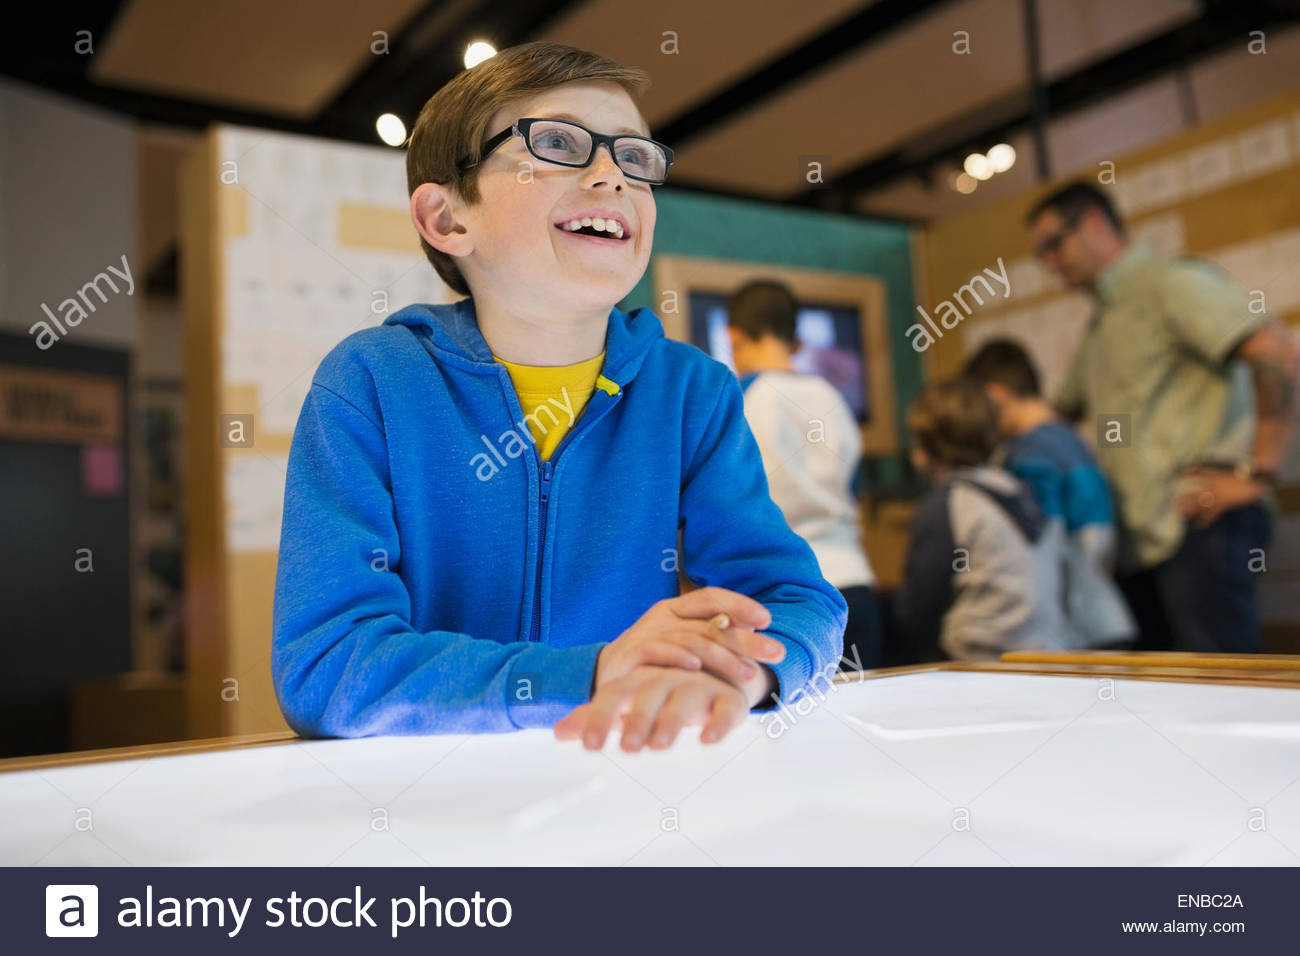 Smiling boy at light table at science center - Stock Image